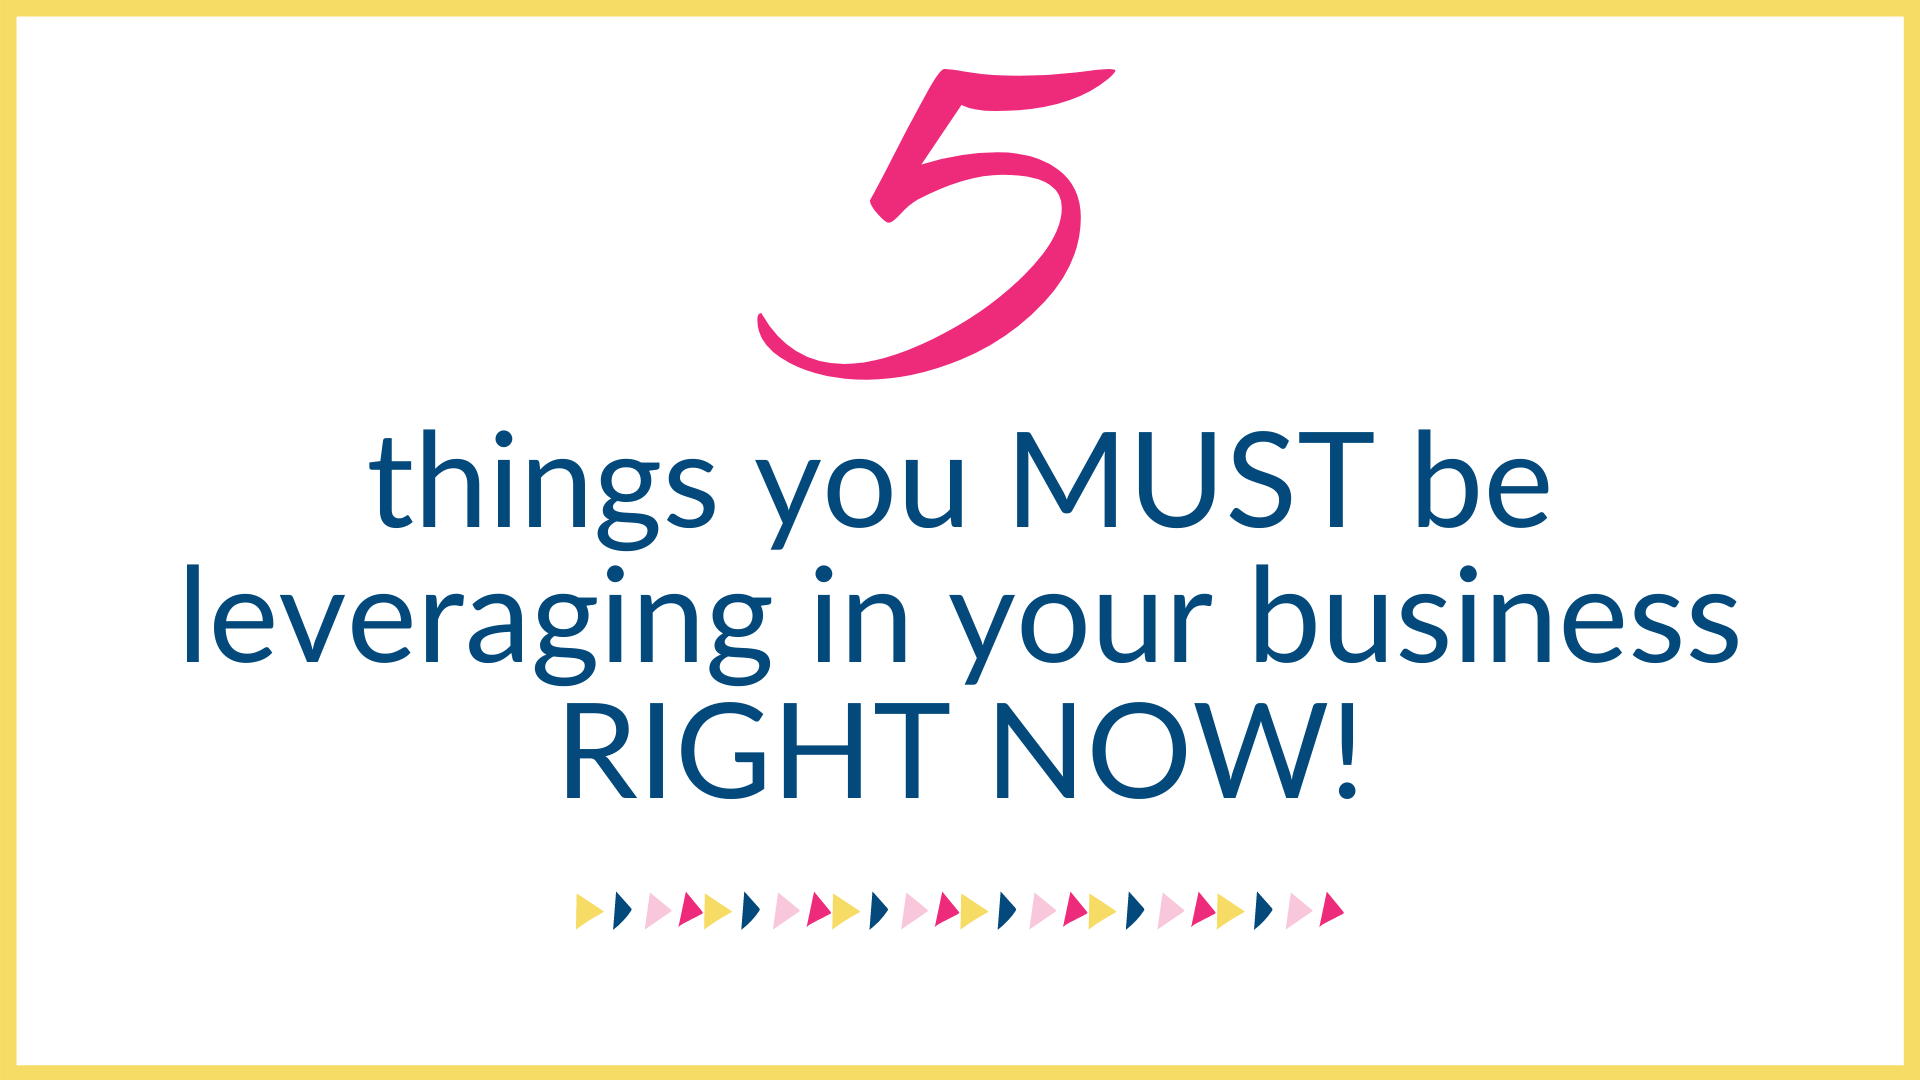 5-Point Leverage guide for your business!